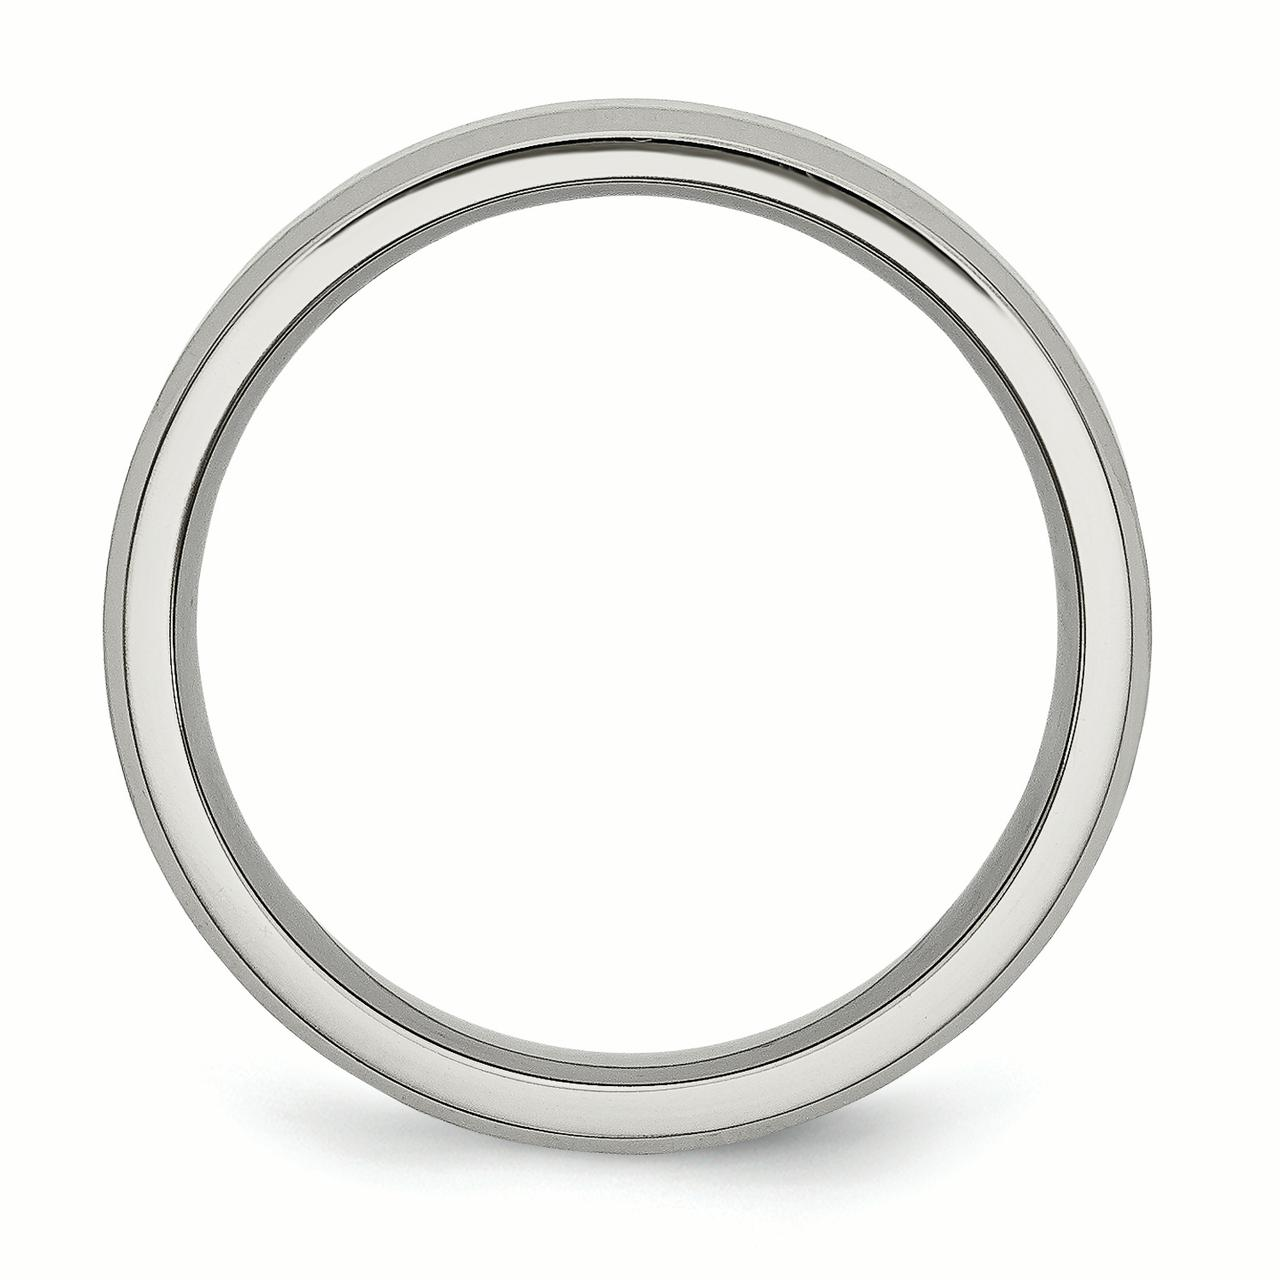 Titanium Beveled Edge 6mm Brushed Wedding Ring Band Size 13.50 Classic Flat W/edge Fashion Jewelry Gifts For Women For Her - image 5 of 7